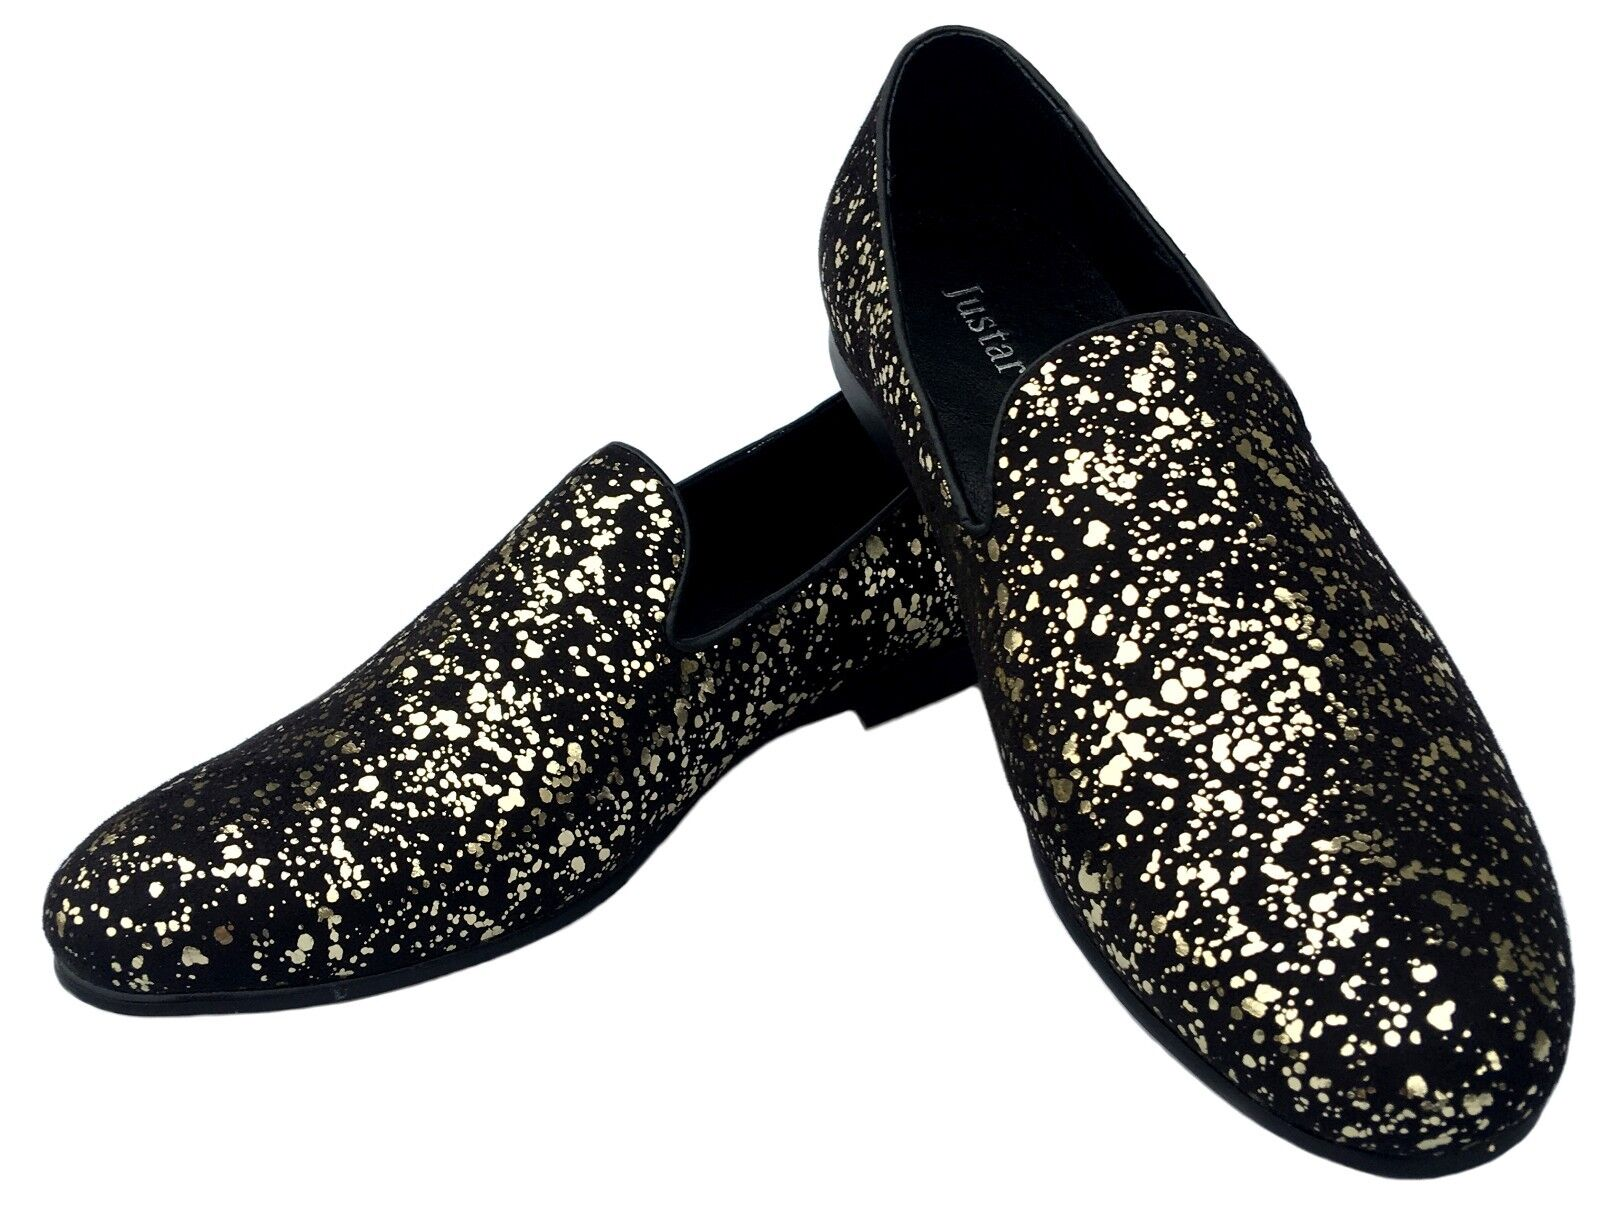 Justar Men's gold Metallic Loafers Slip-On Dress shoes Smoking Slippers Flats